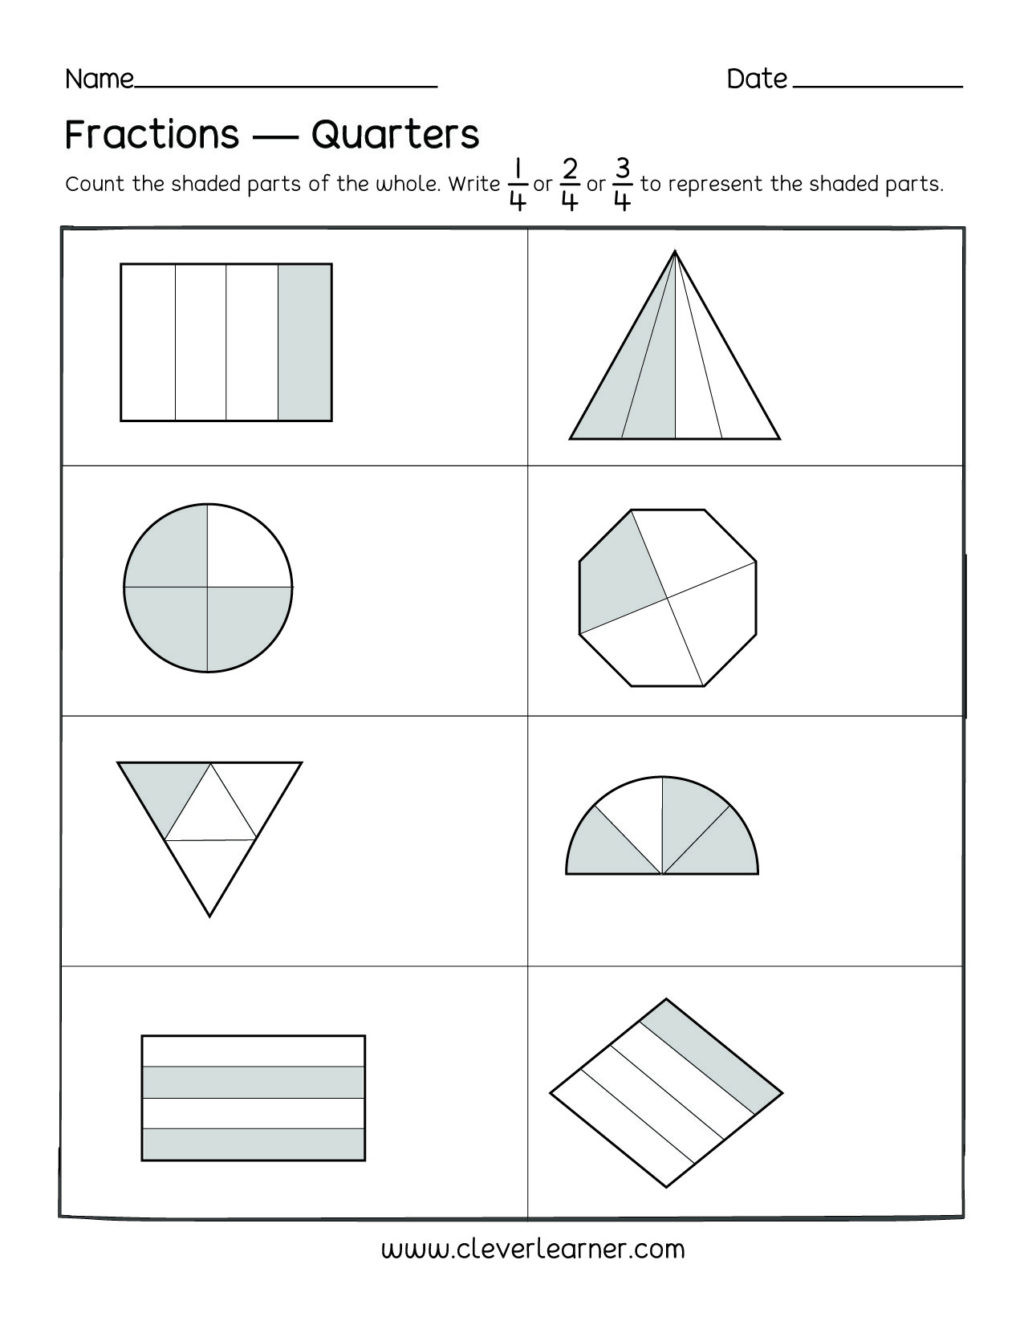 2nd Grade Fractions Worksheets Worksheet Worksheet Remarkable Second Grade Fractionsets